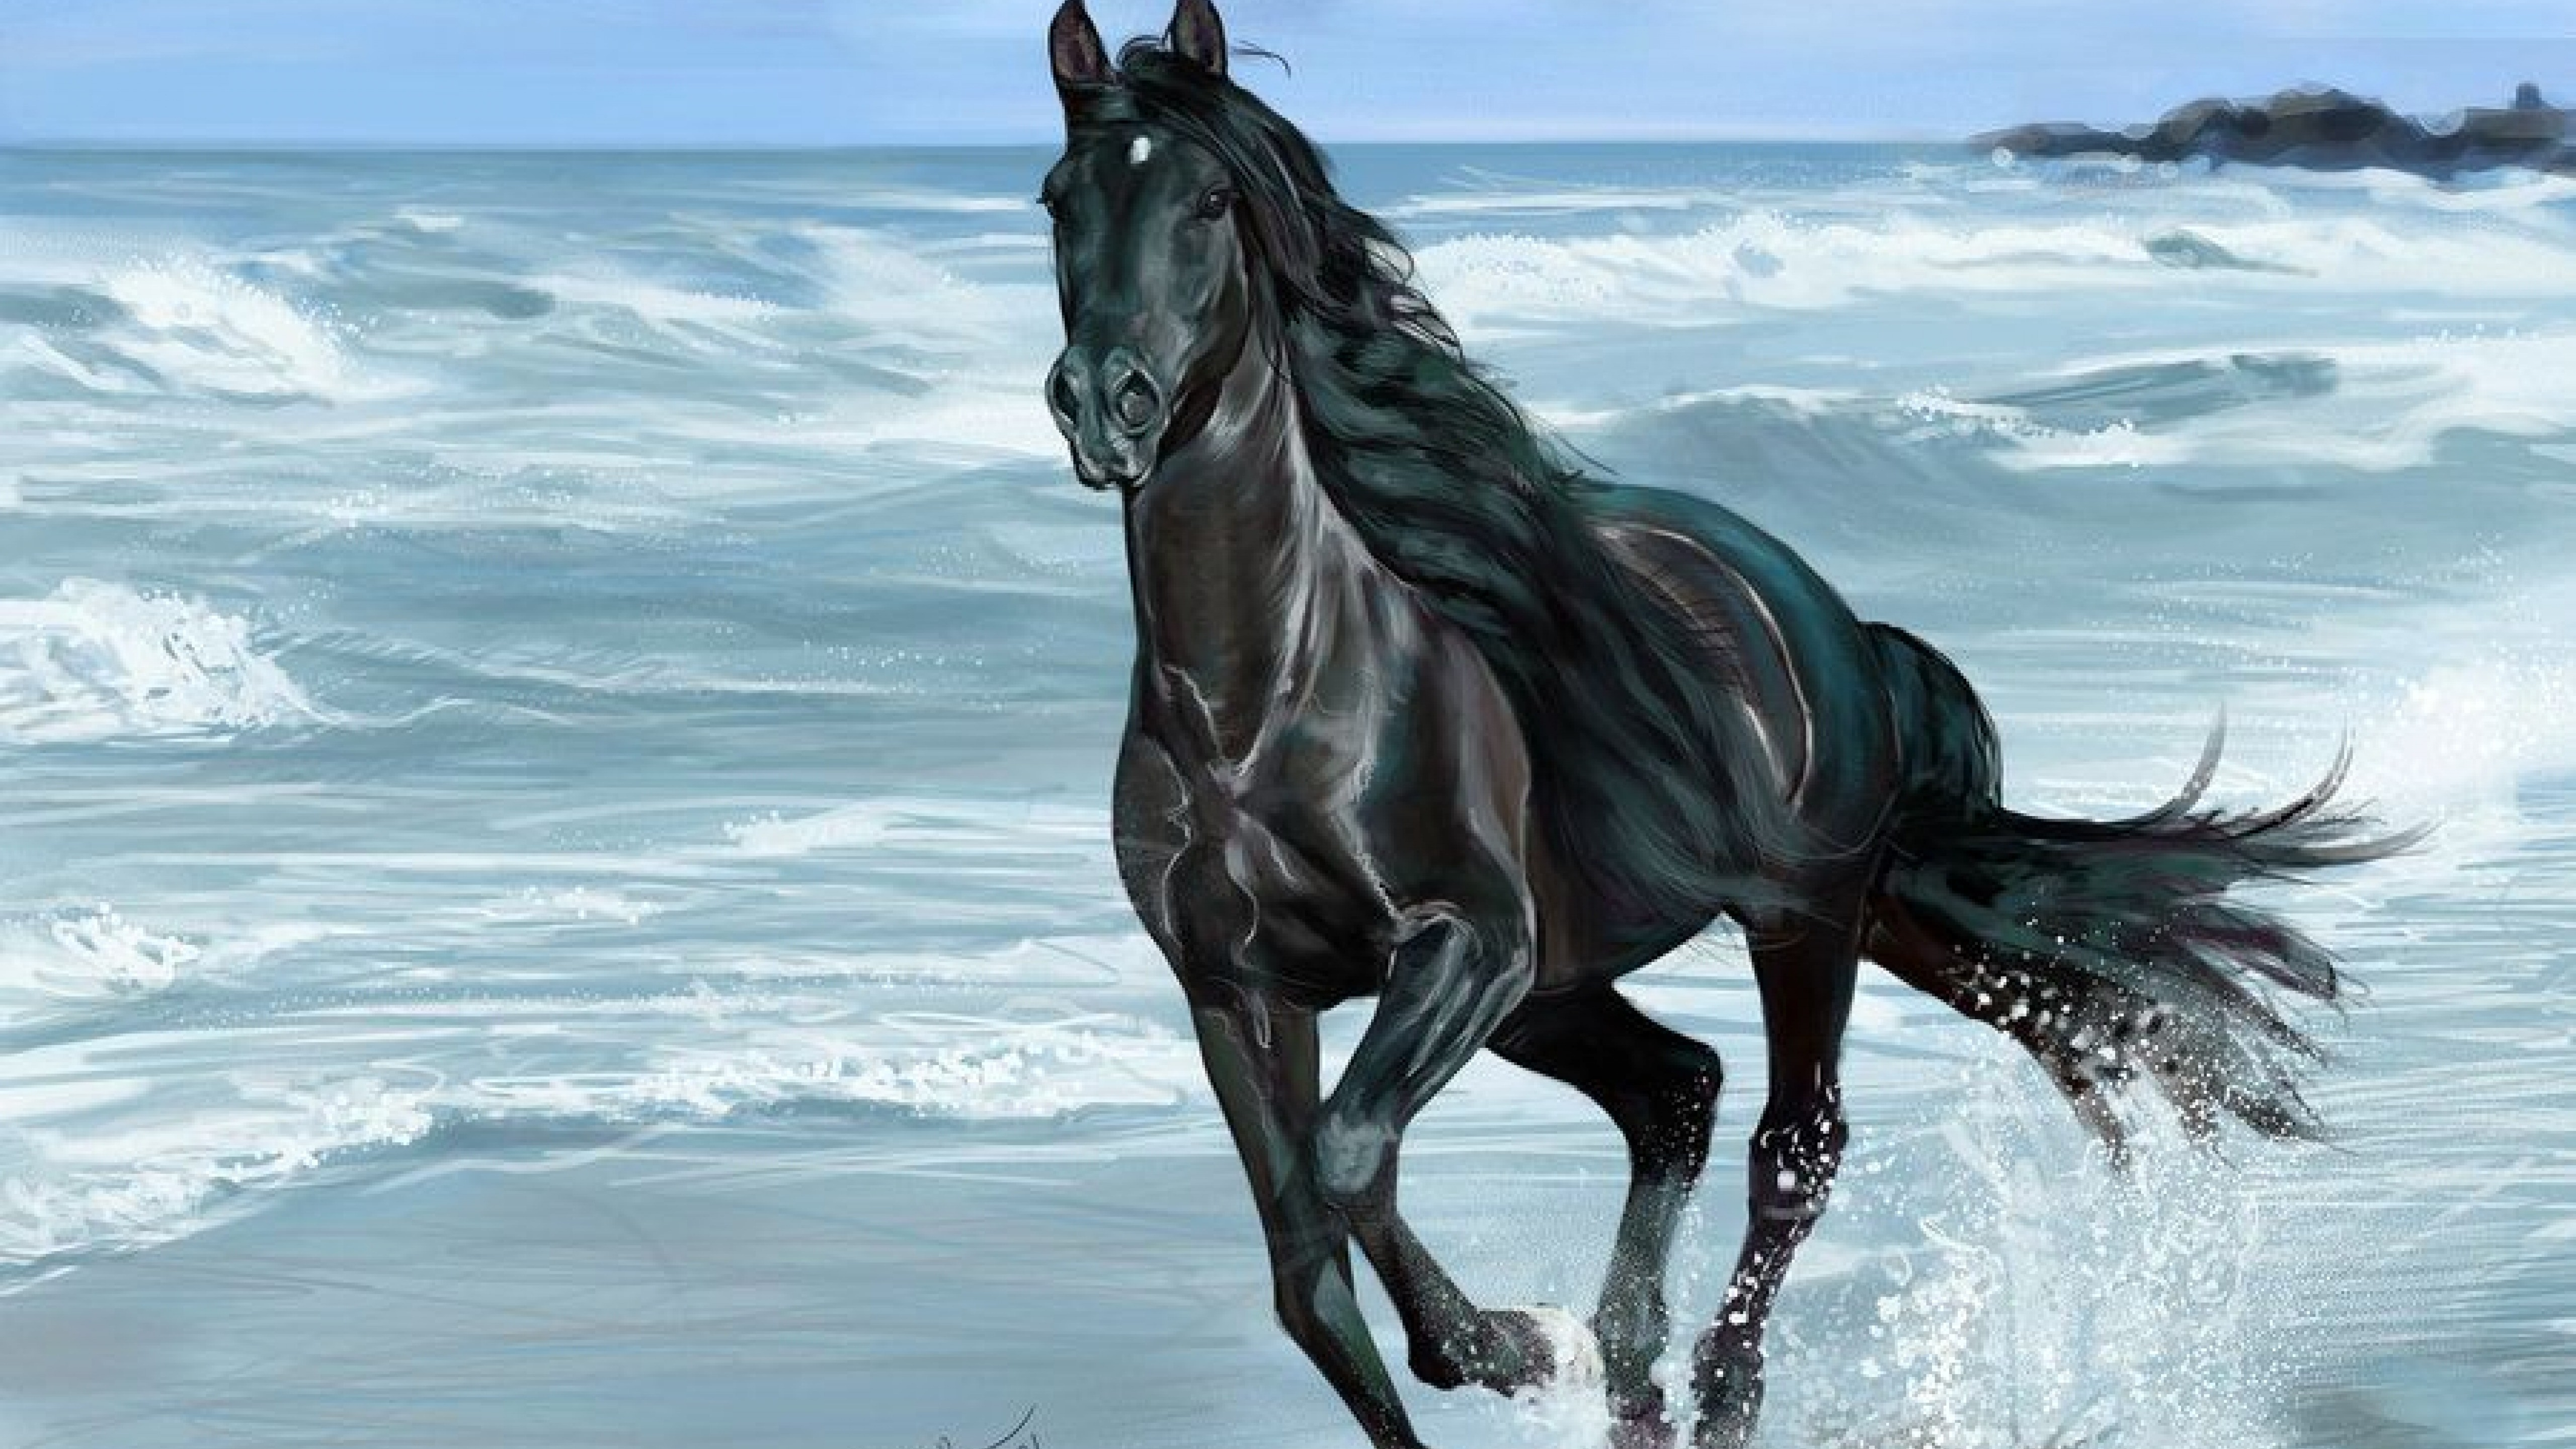 5k Painting Art Of Black Horse Running On Beach Black Horse On Beach 1892191 Hd Wallpaper Backgrounds Download